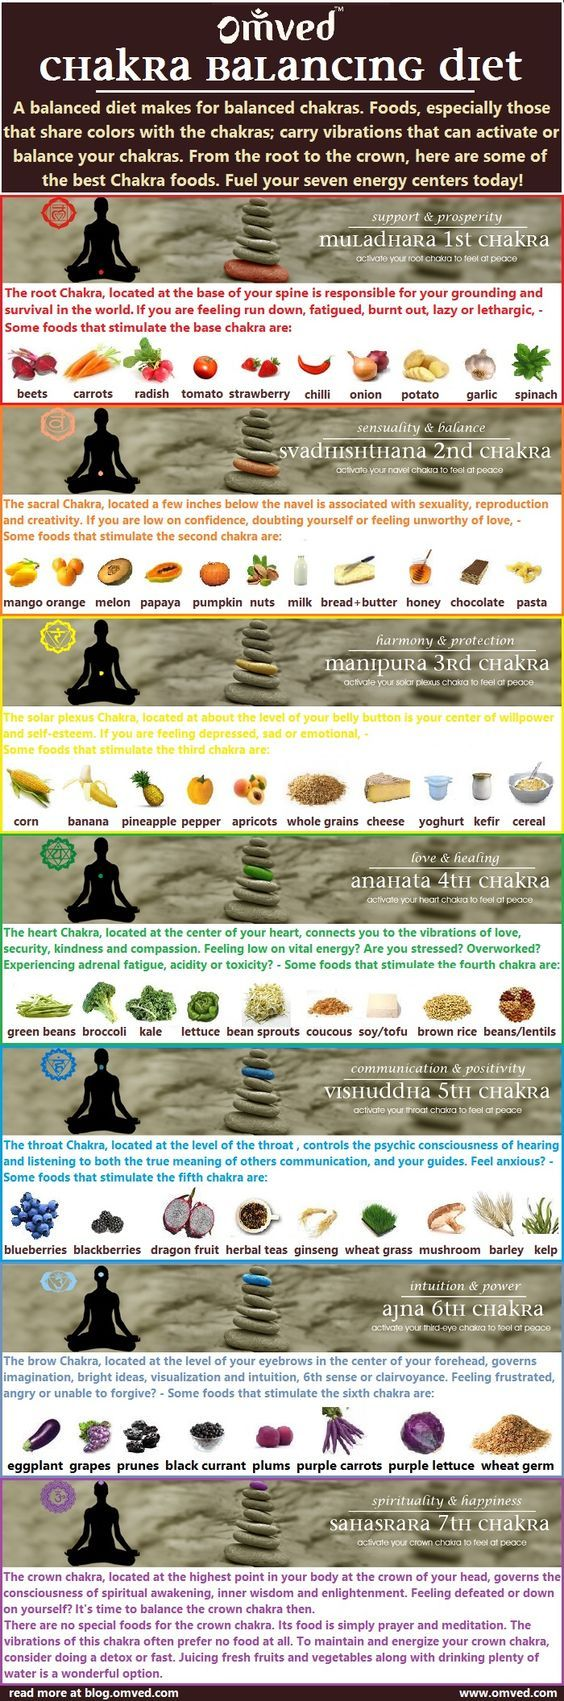 Our etheric body consists of 7 chakra centers.When you think about your chakra system,you probably aren't considering the types of foods that you consume.Food can also be used to balance your chakras and the etheric body. This Infographic will tell you how to balance your chakras with food. Source:https://s-media-cache-ak0.pinimg.com/